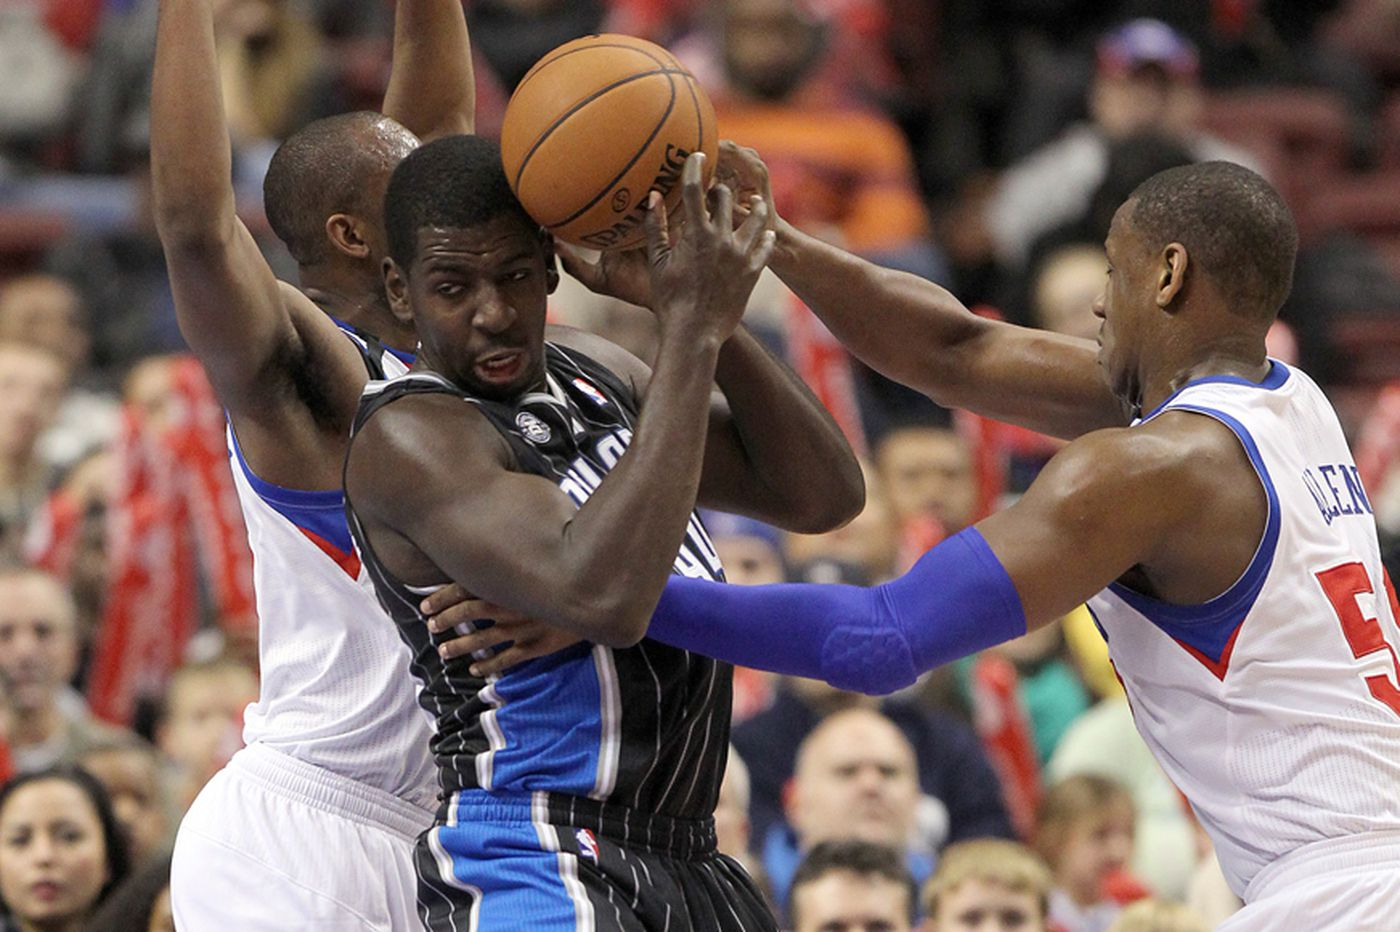 Former NBA player Andrew Nicholson to lead Guangzhou Loong Lions against Sixers